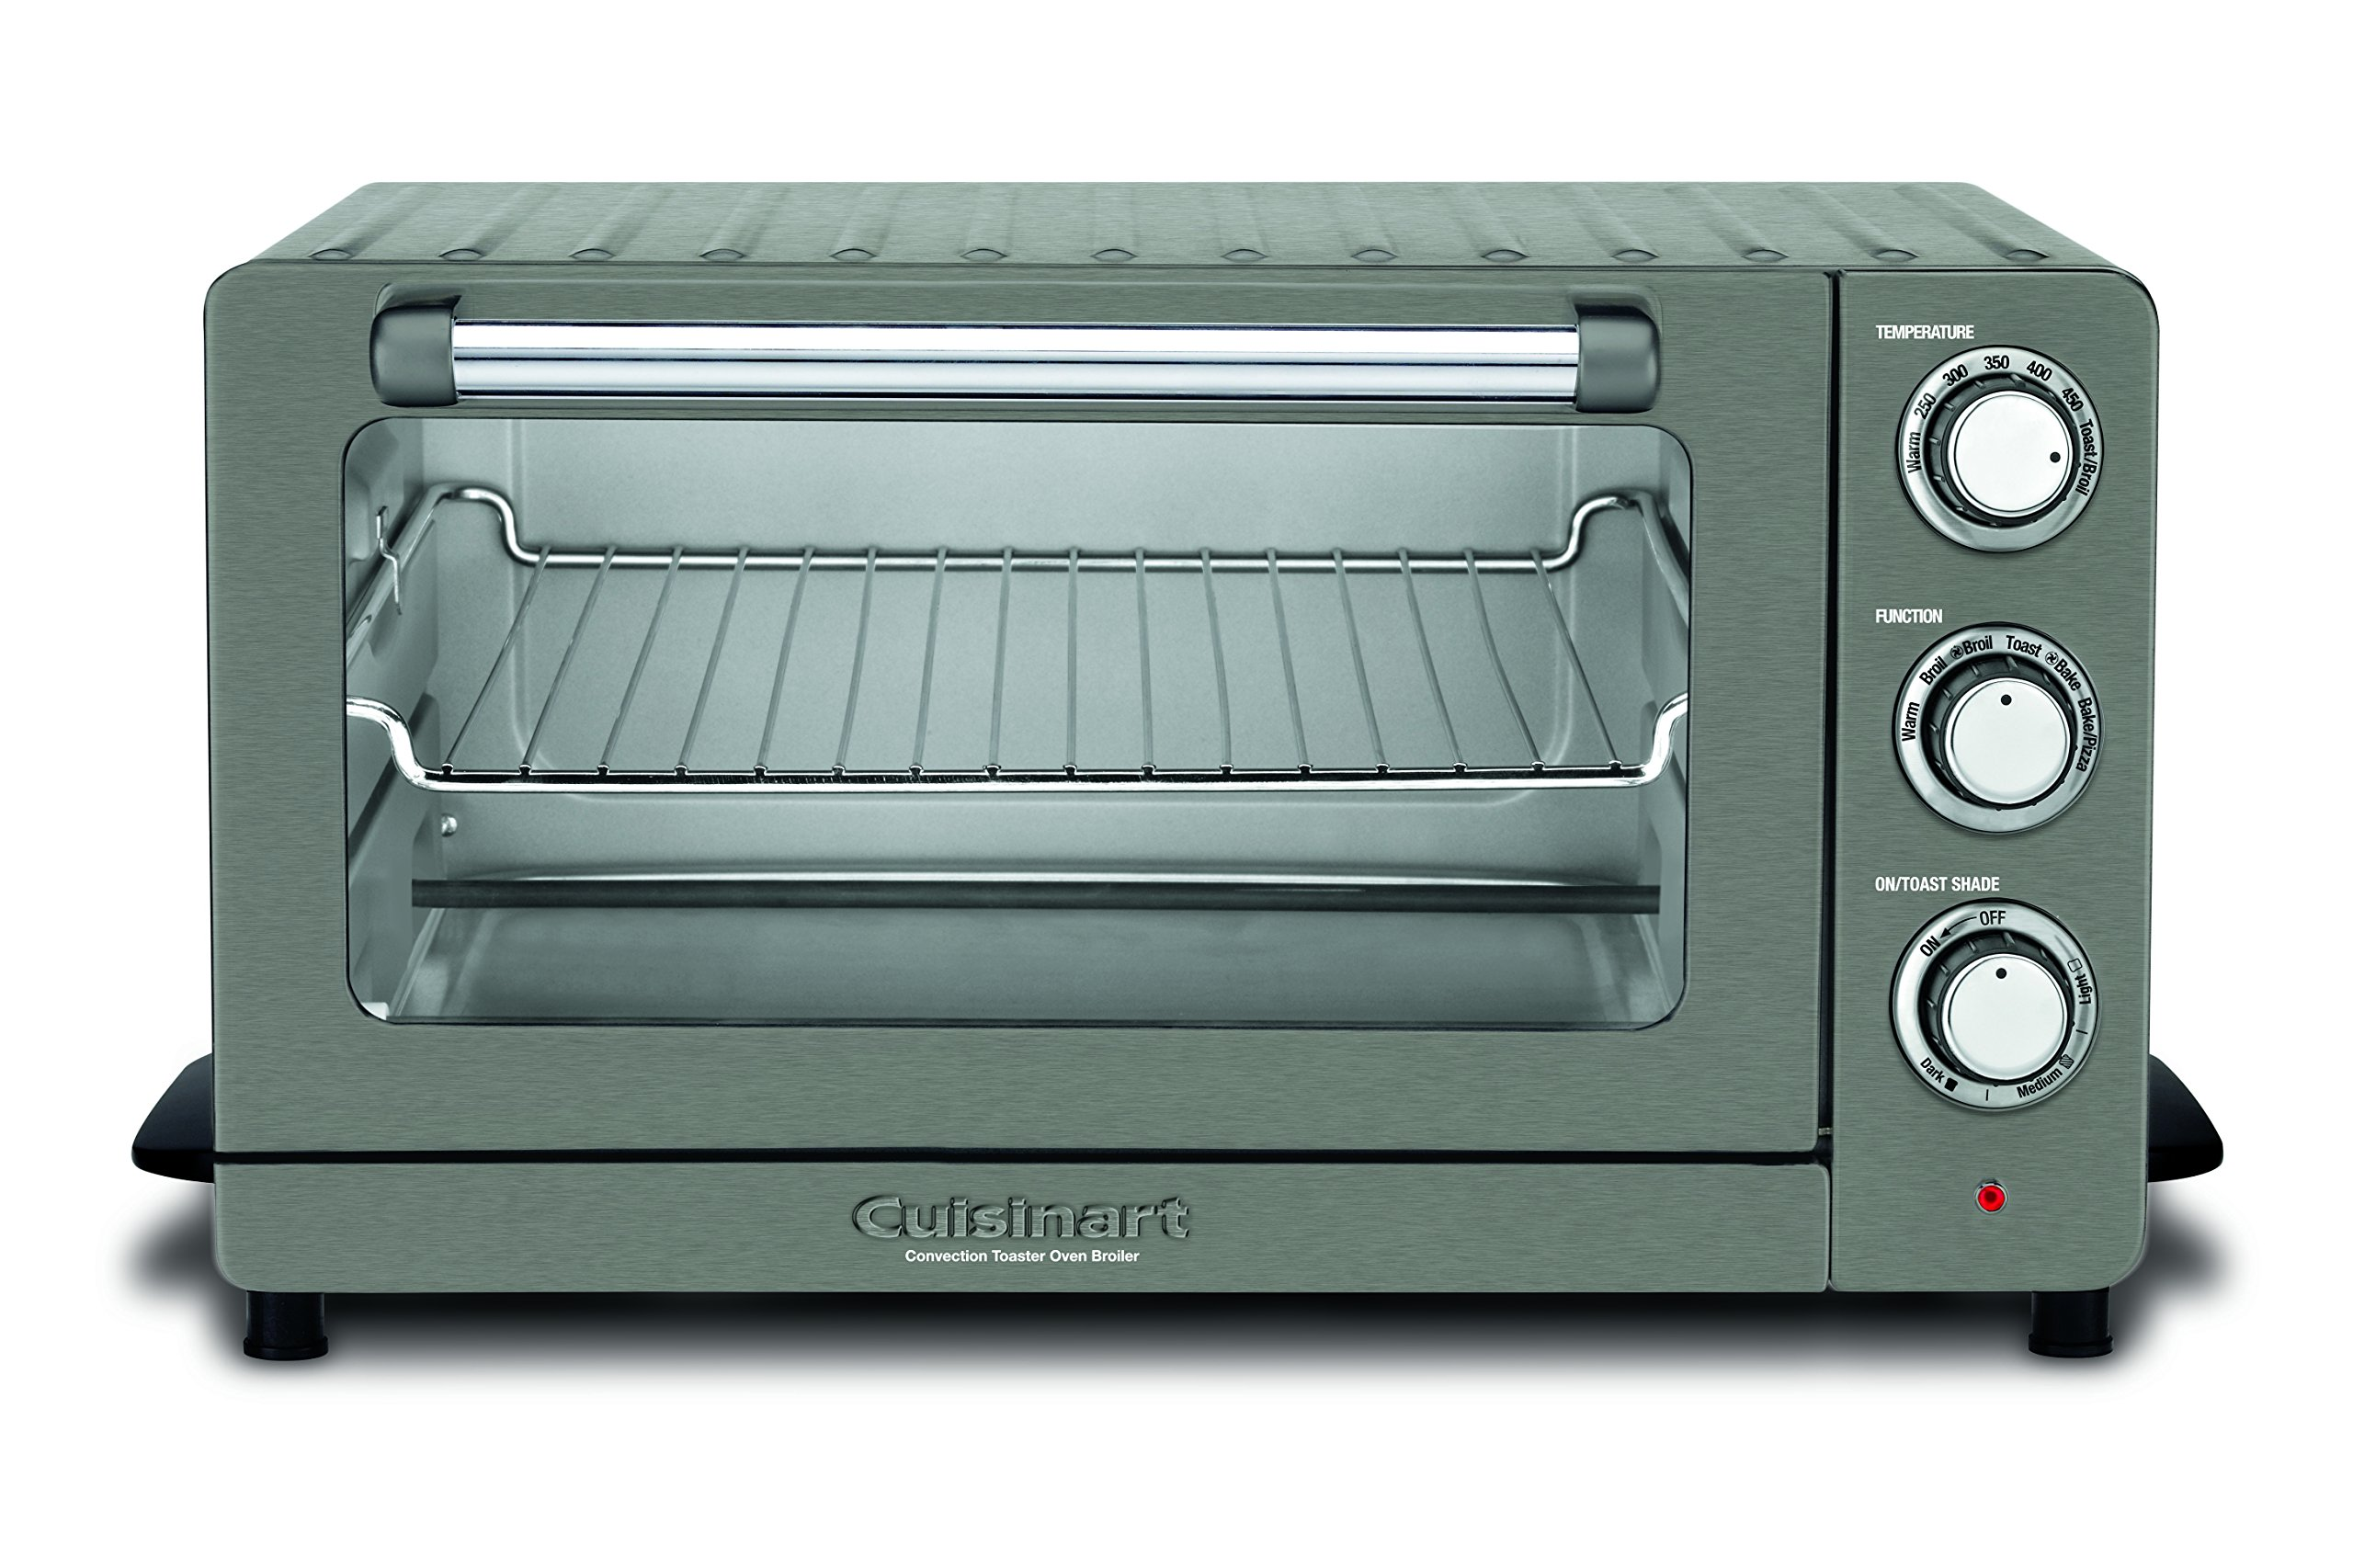 Cuisinart TOB-60N1BKS2 Convection Toaster Oven, 086279133458, Black Stainless by Cuisinart